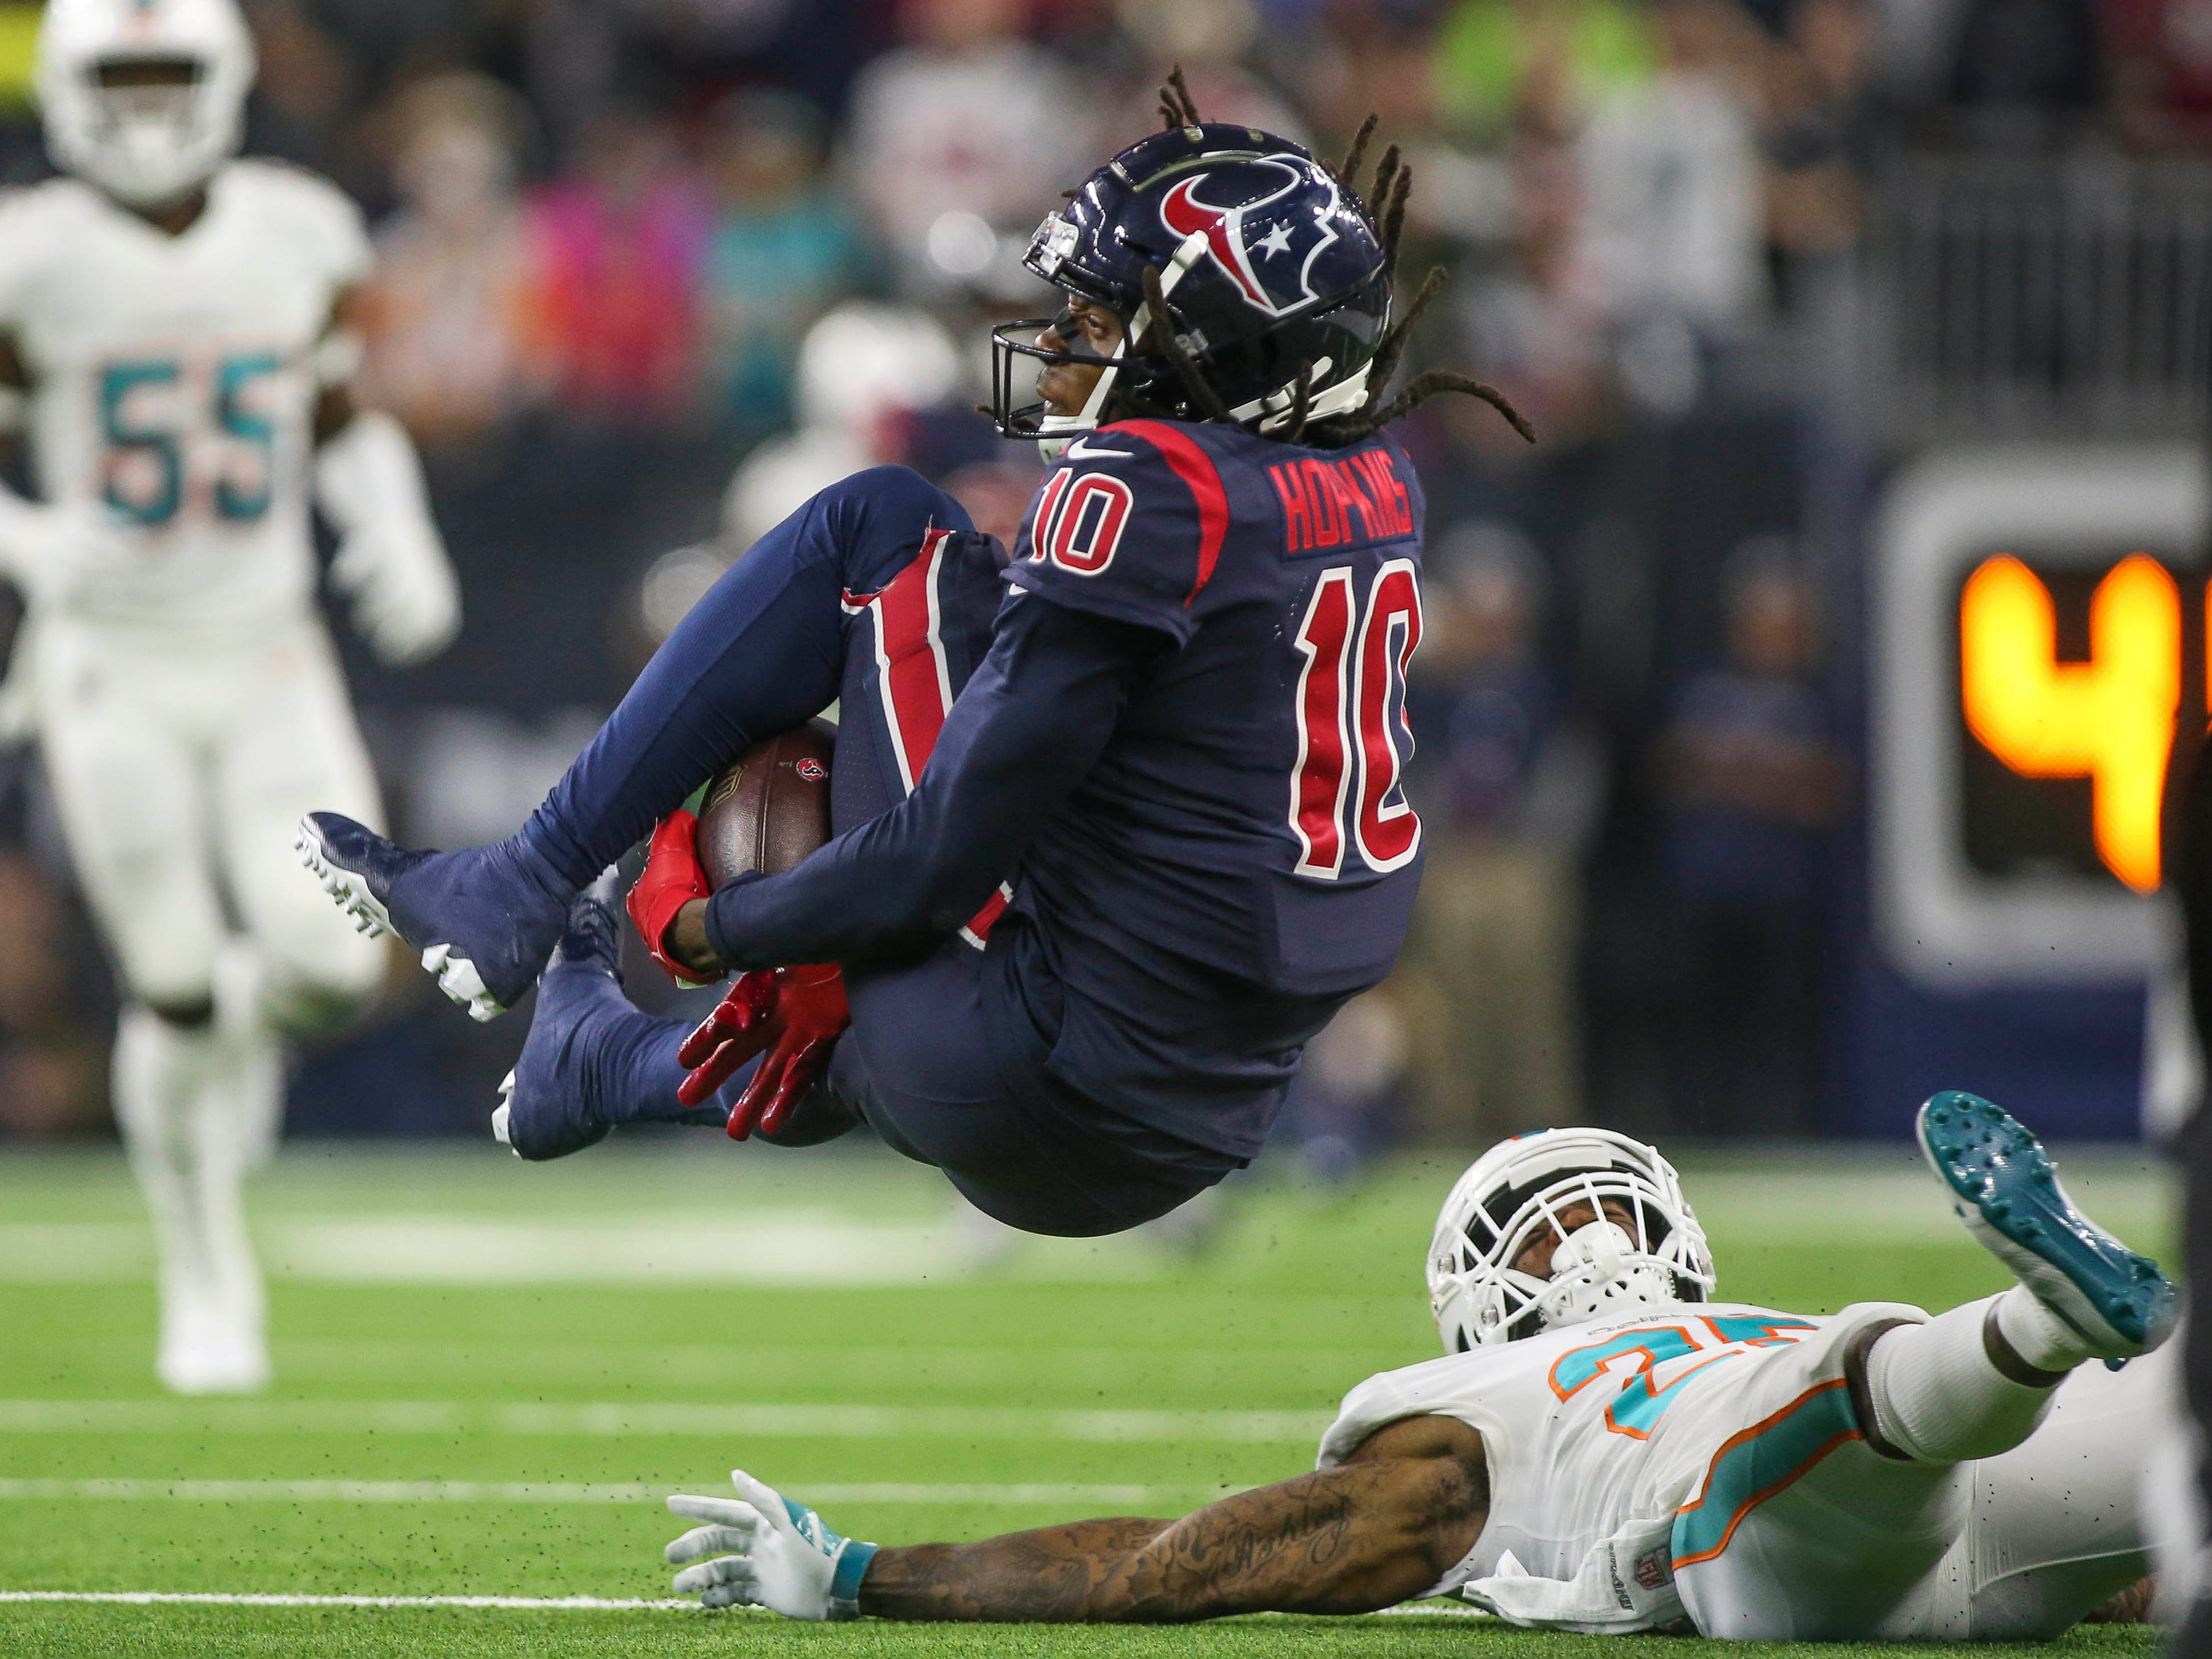 WR - DeAndre Hopkins, Houston Texans